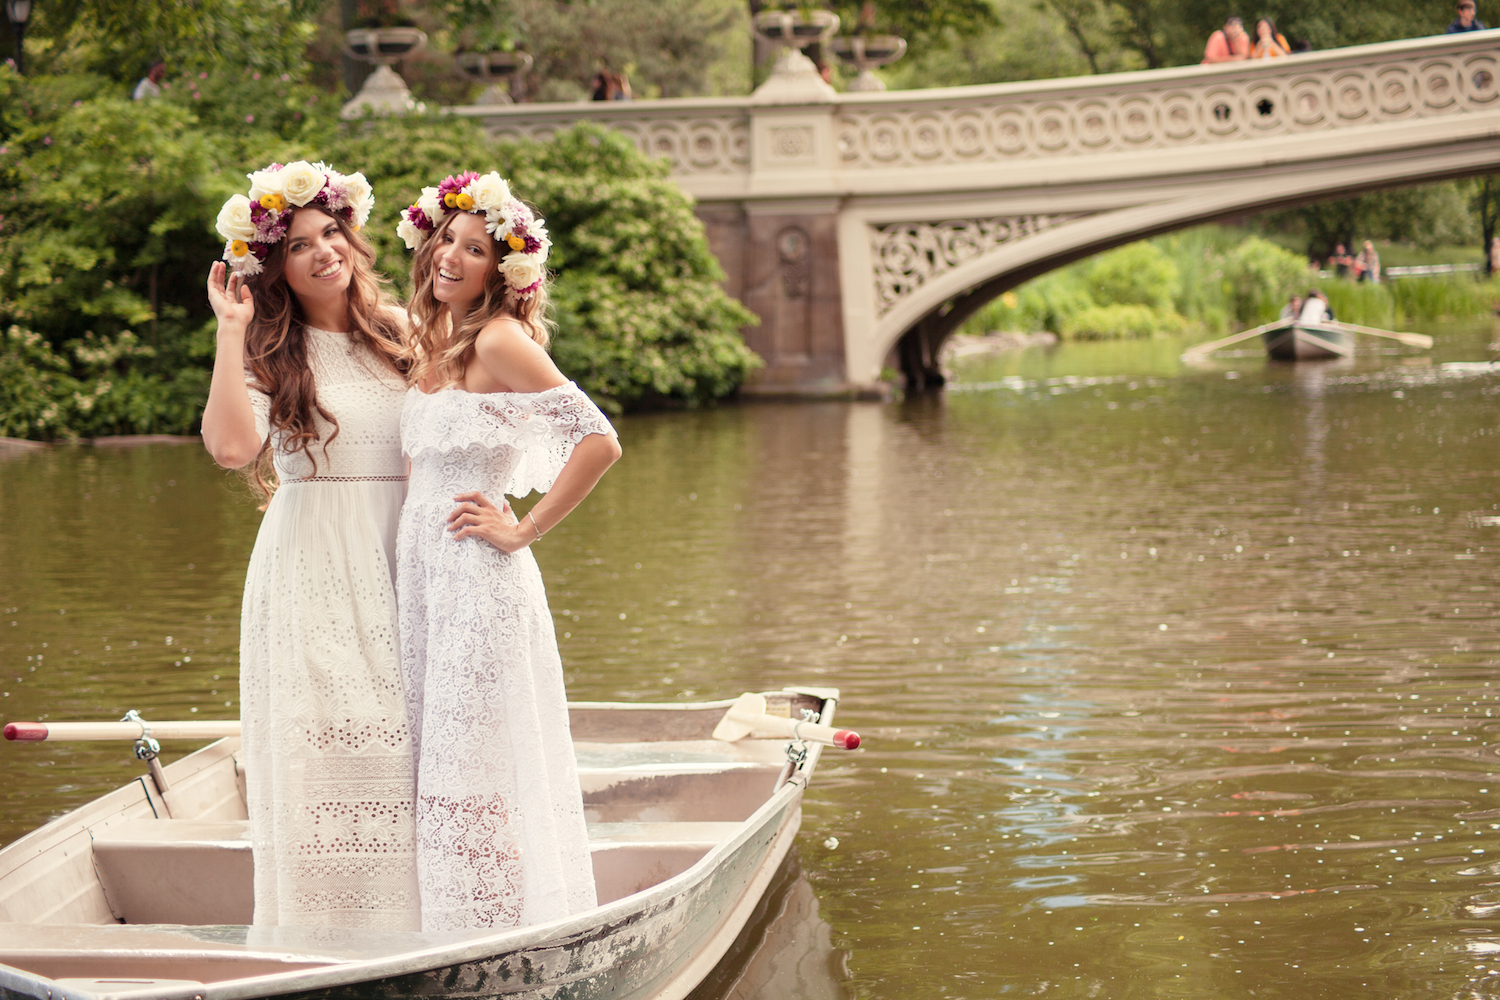 boat-centralpark-boatrides-fashion-crown-flowercrown-beauty-nature-bff-allbuenothings